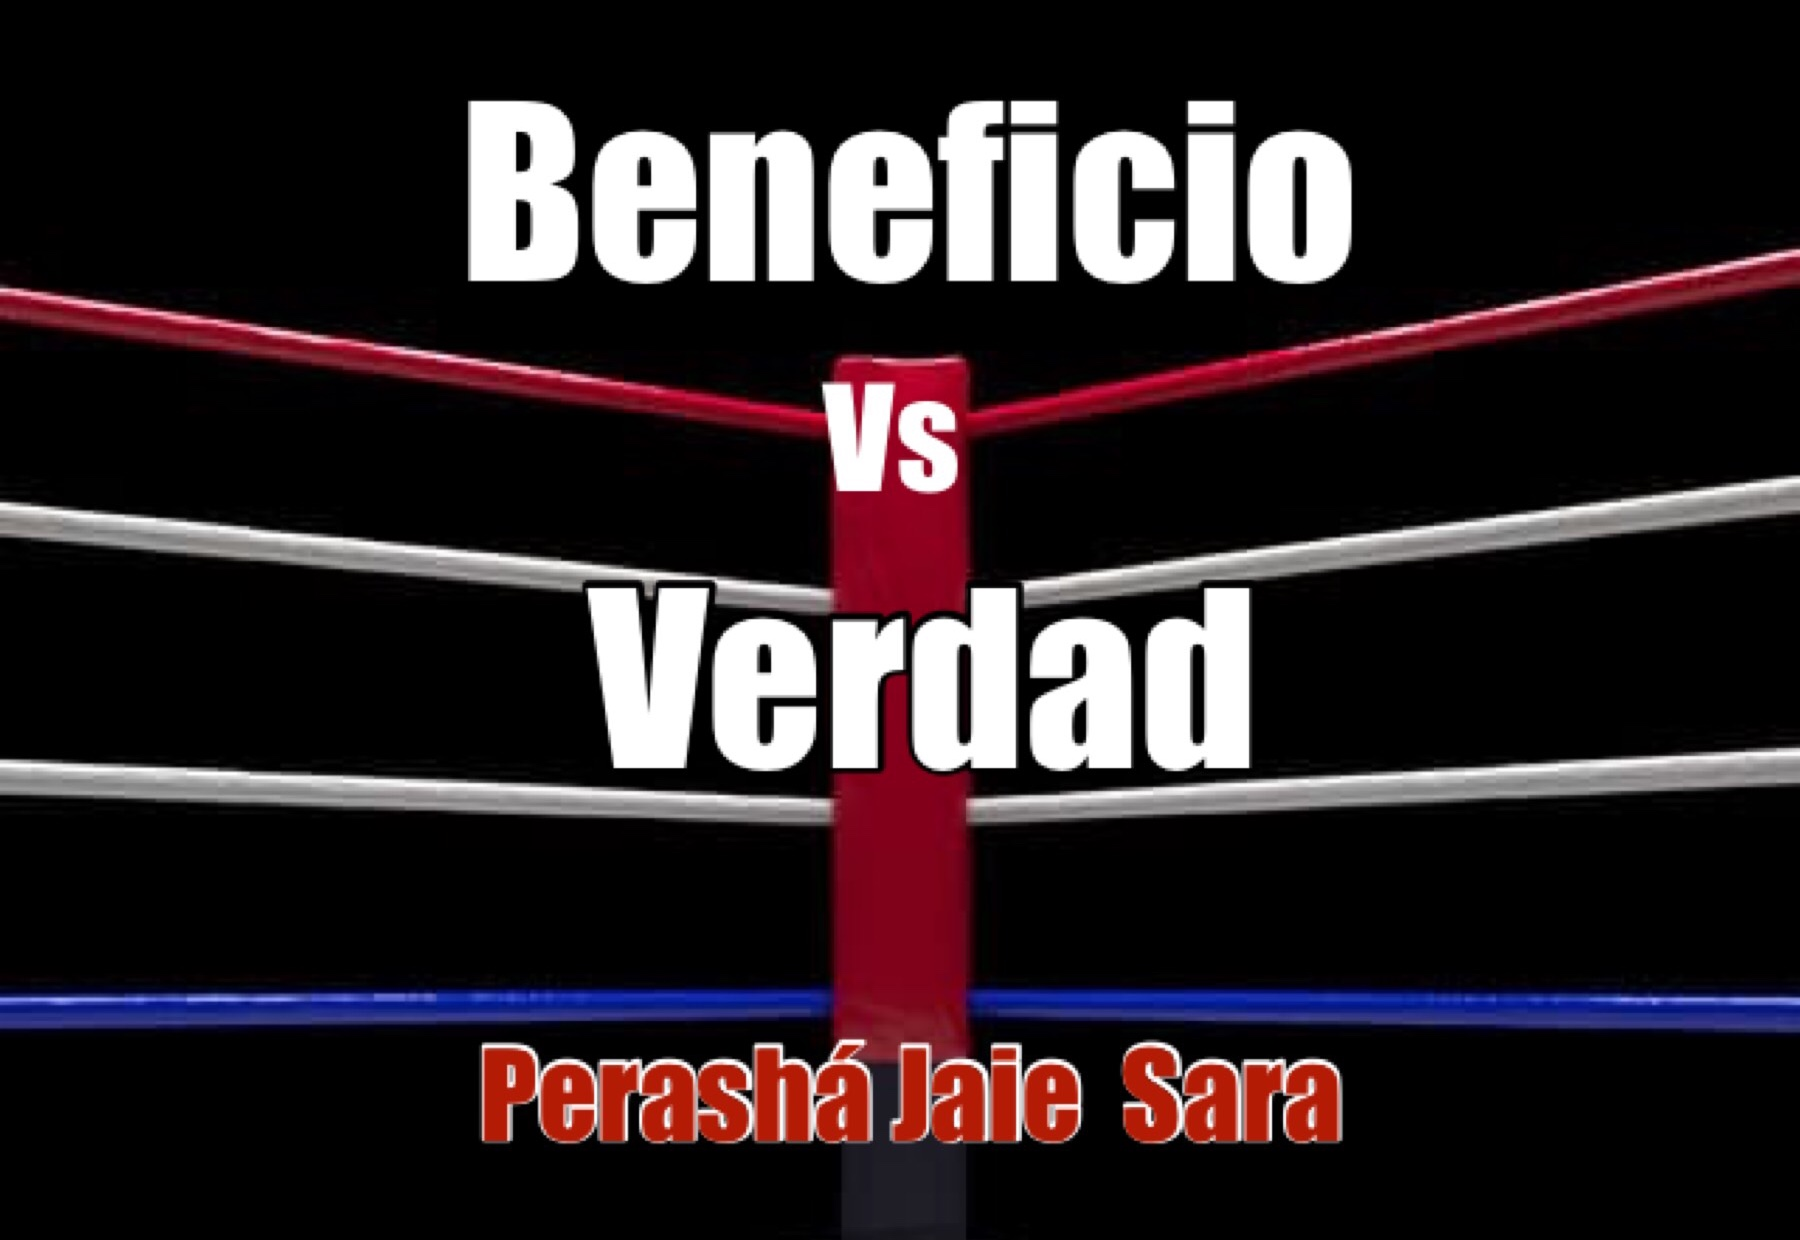 947-Beneficio vs Verdad